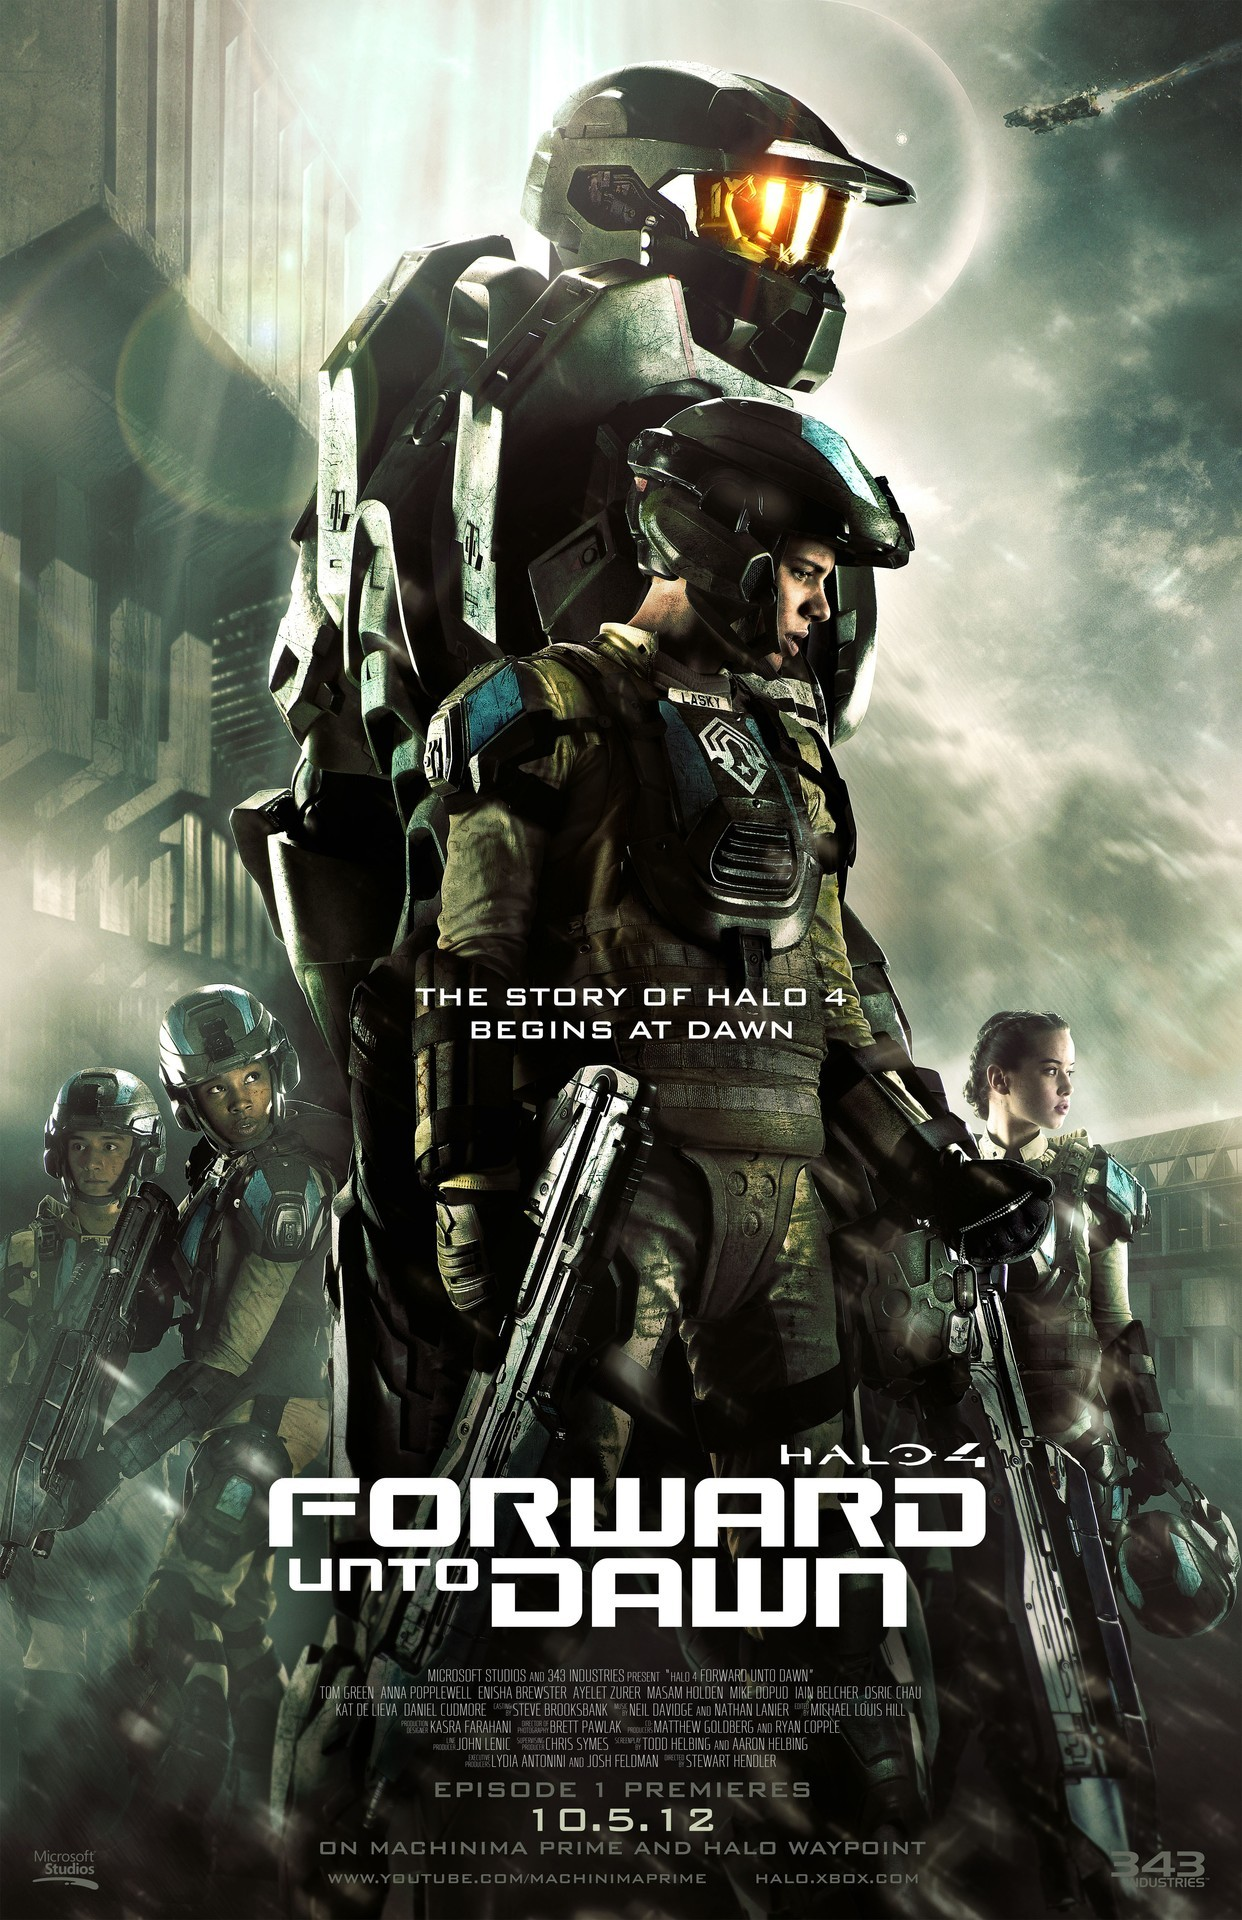 Halo 4 - Forward Unto Dawn Poster The closest thing we'll get to a Halo movie, and it's official.